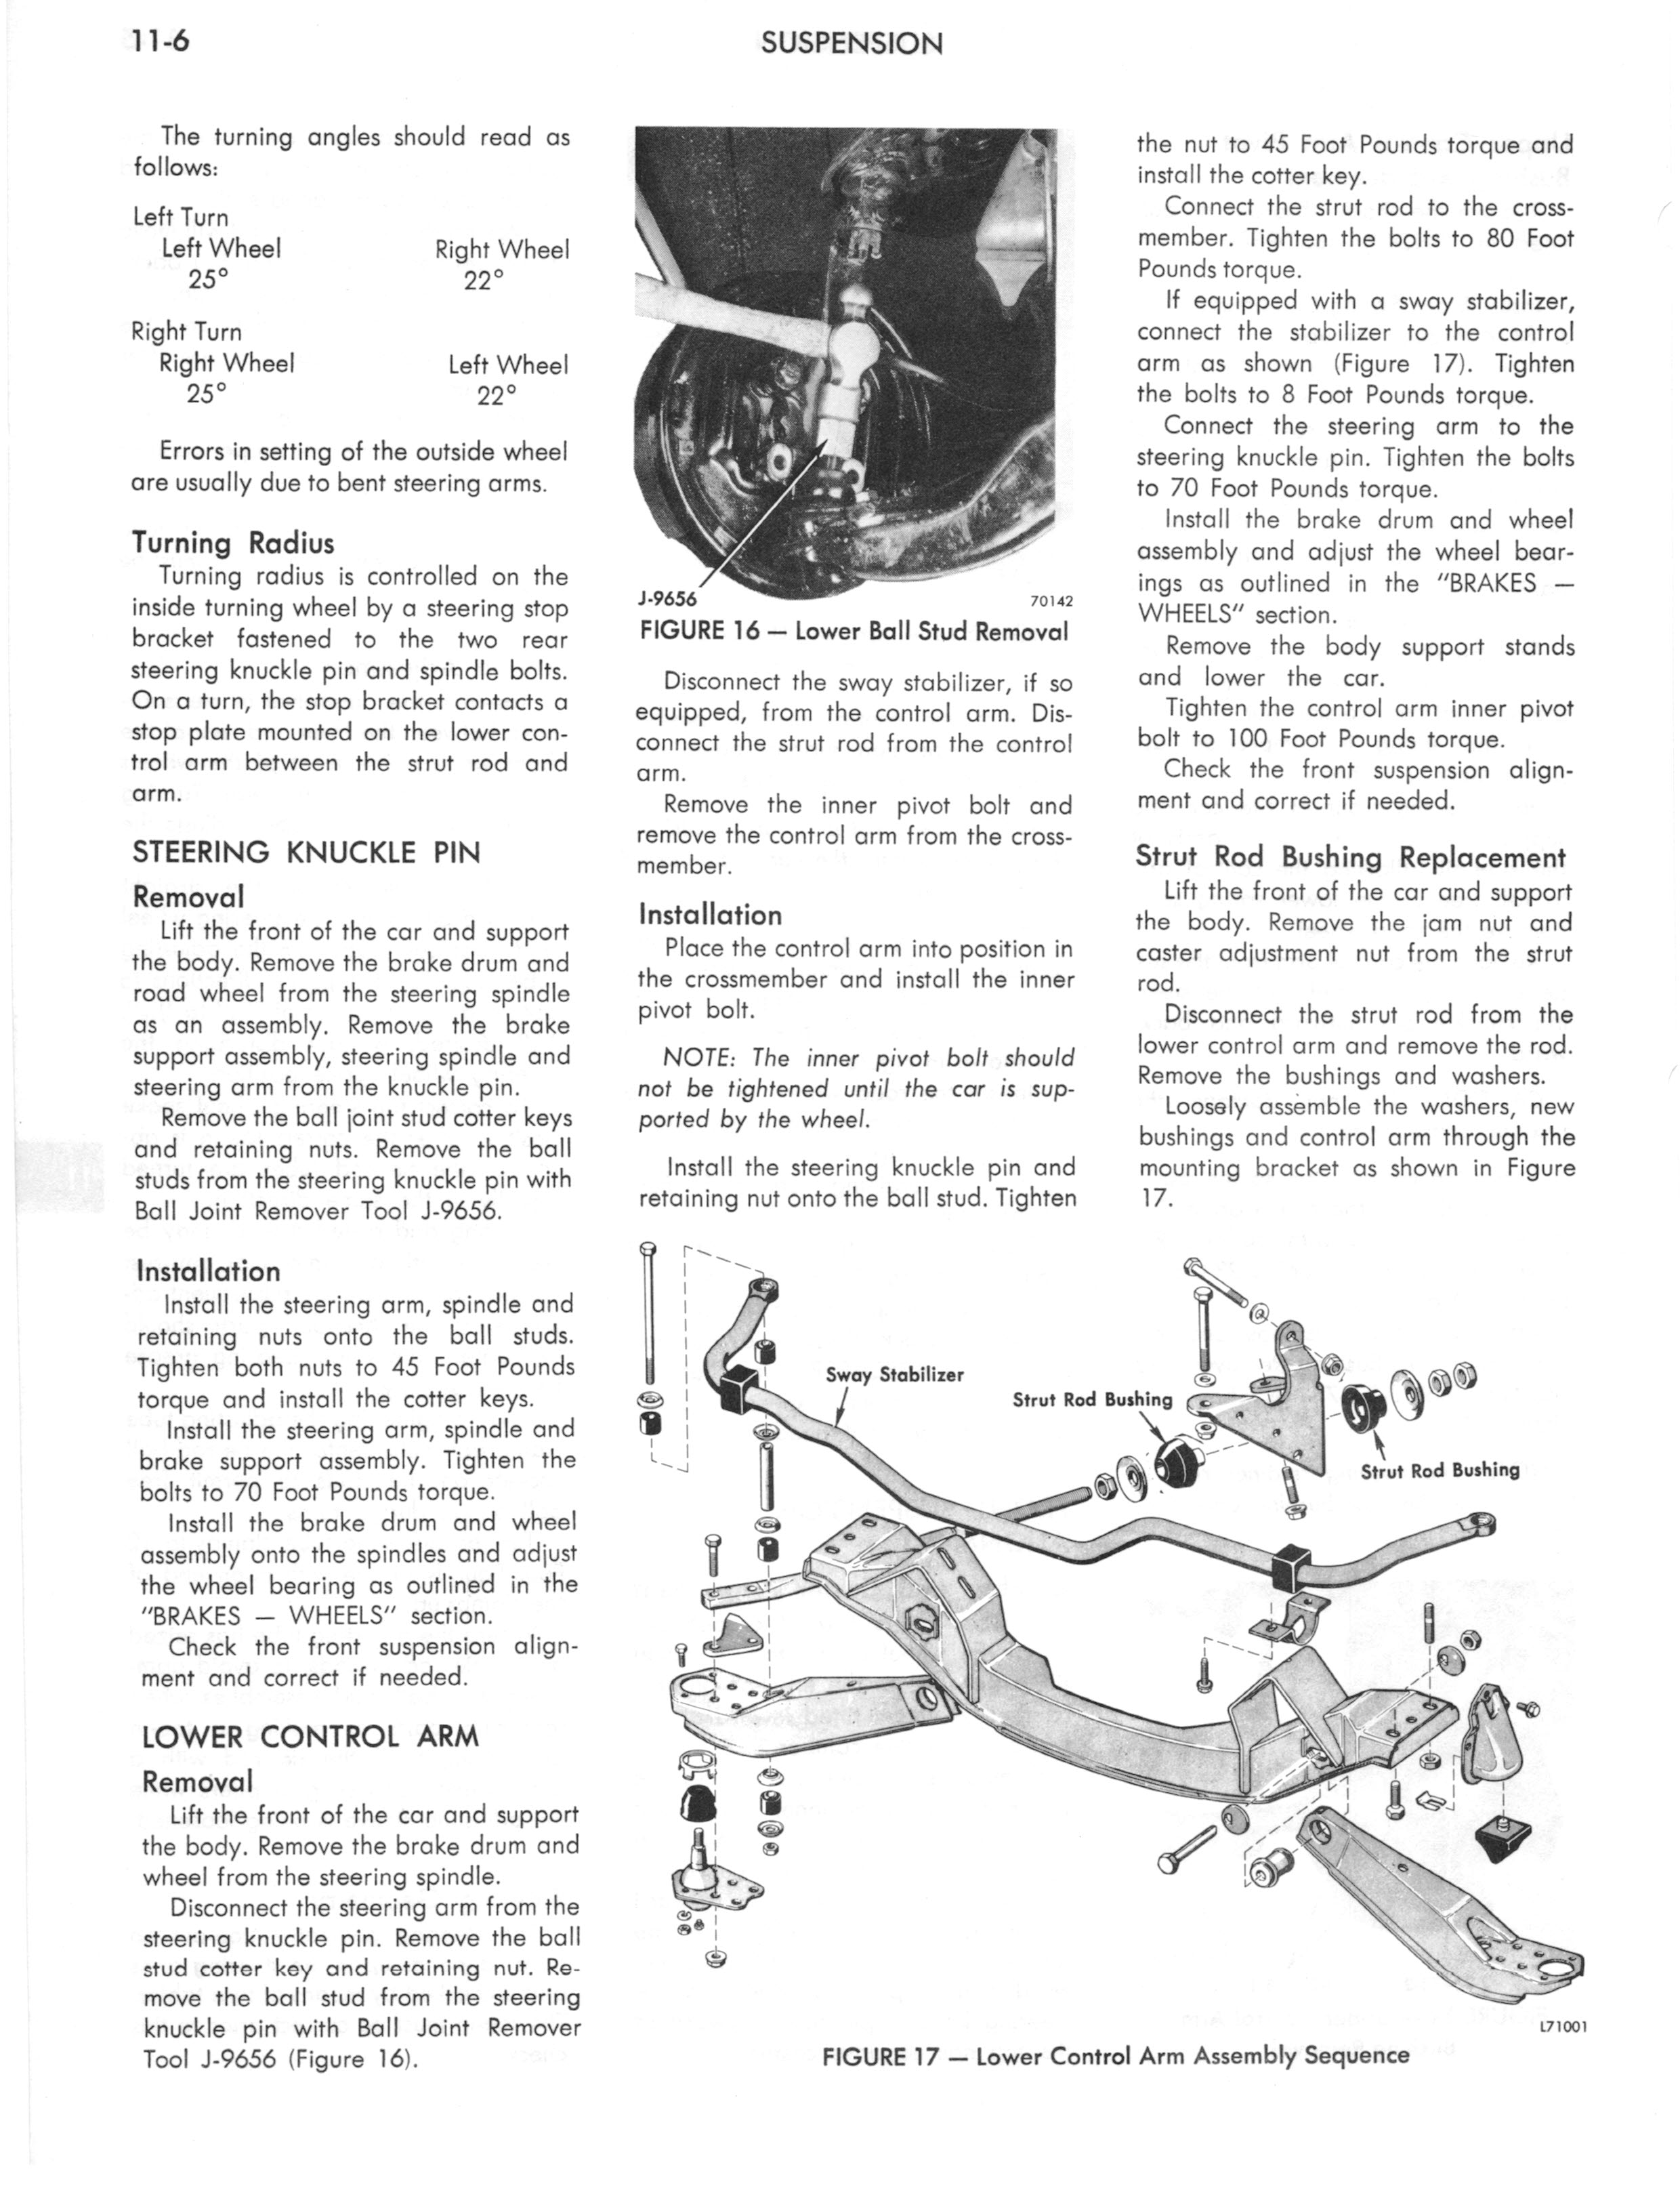 1973 AMC Technical Service Manual page 334 of 487